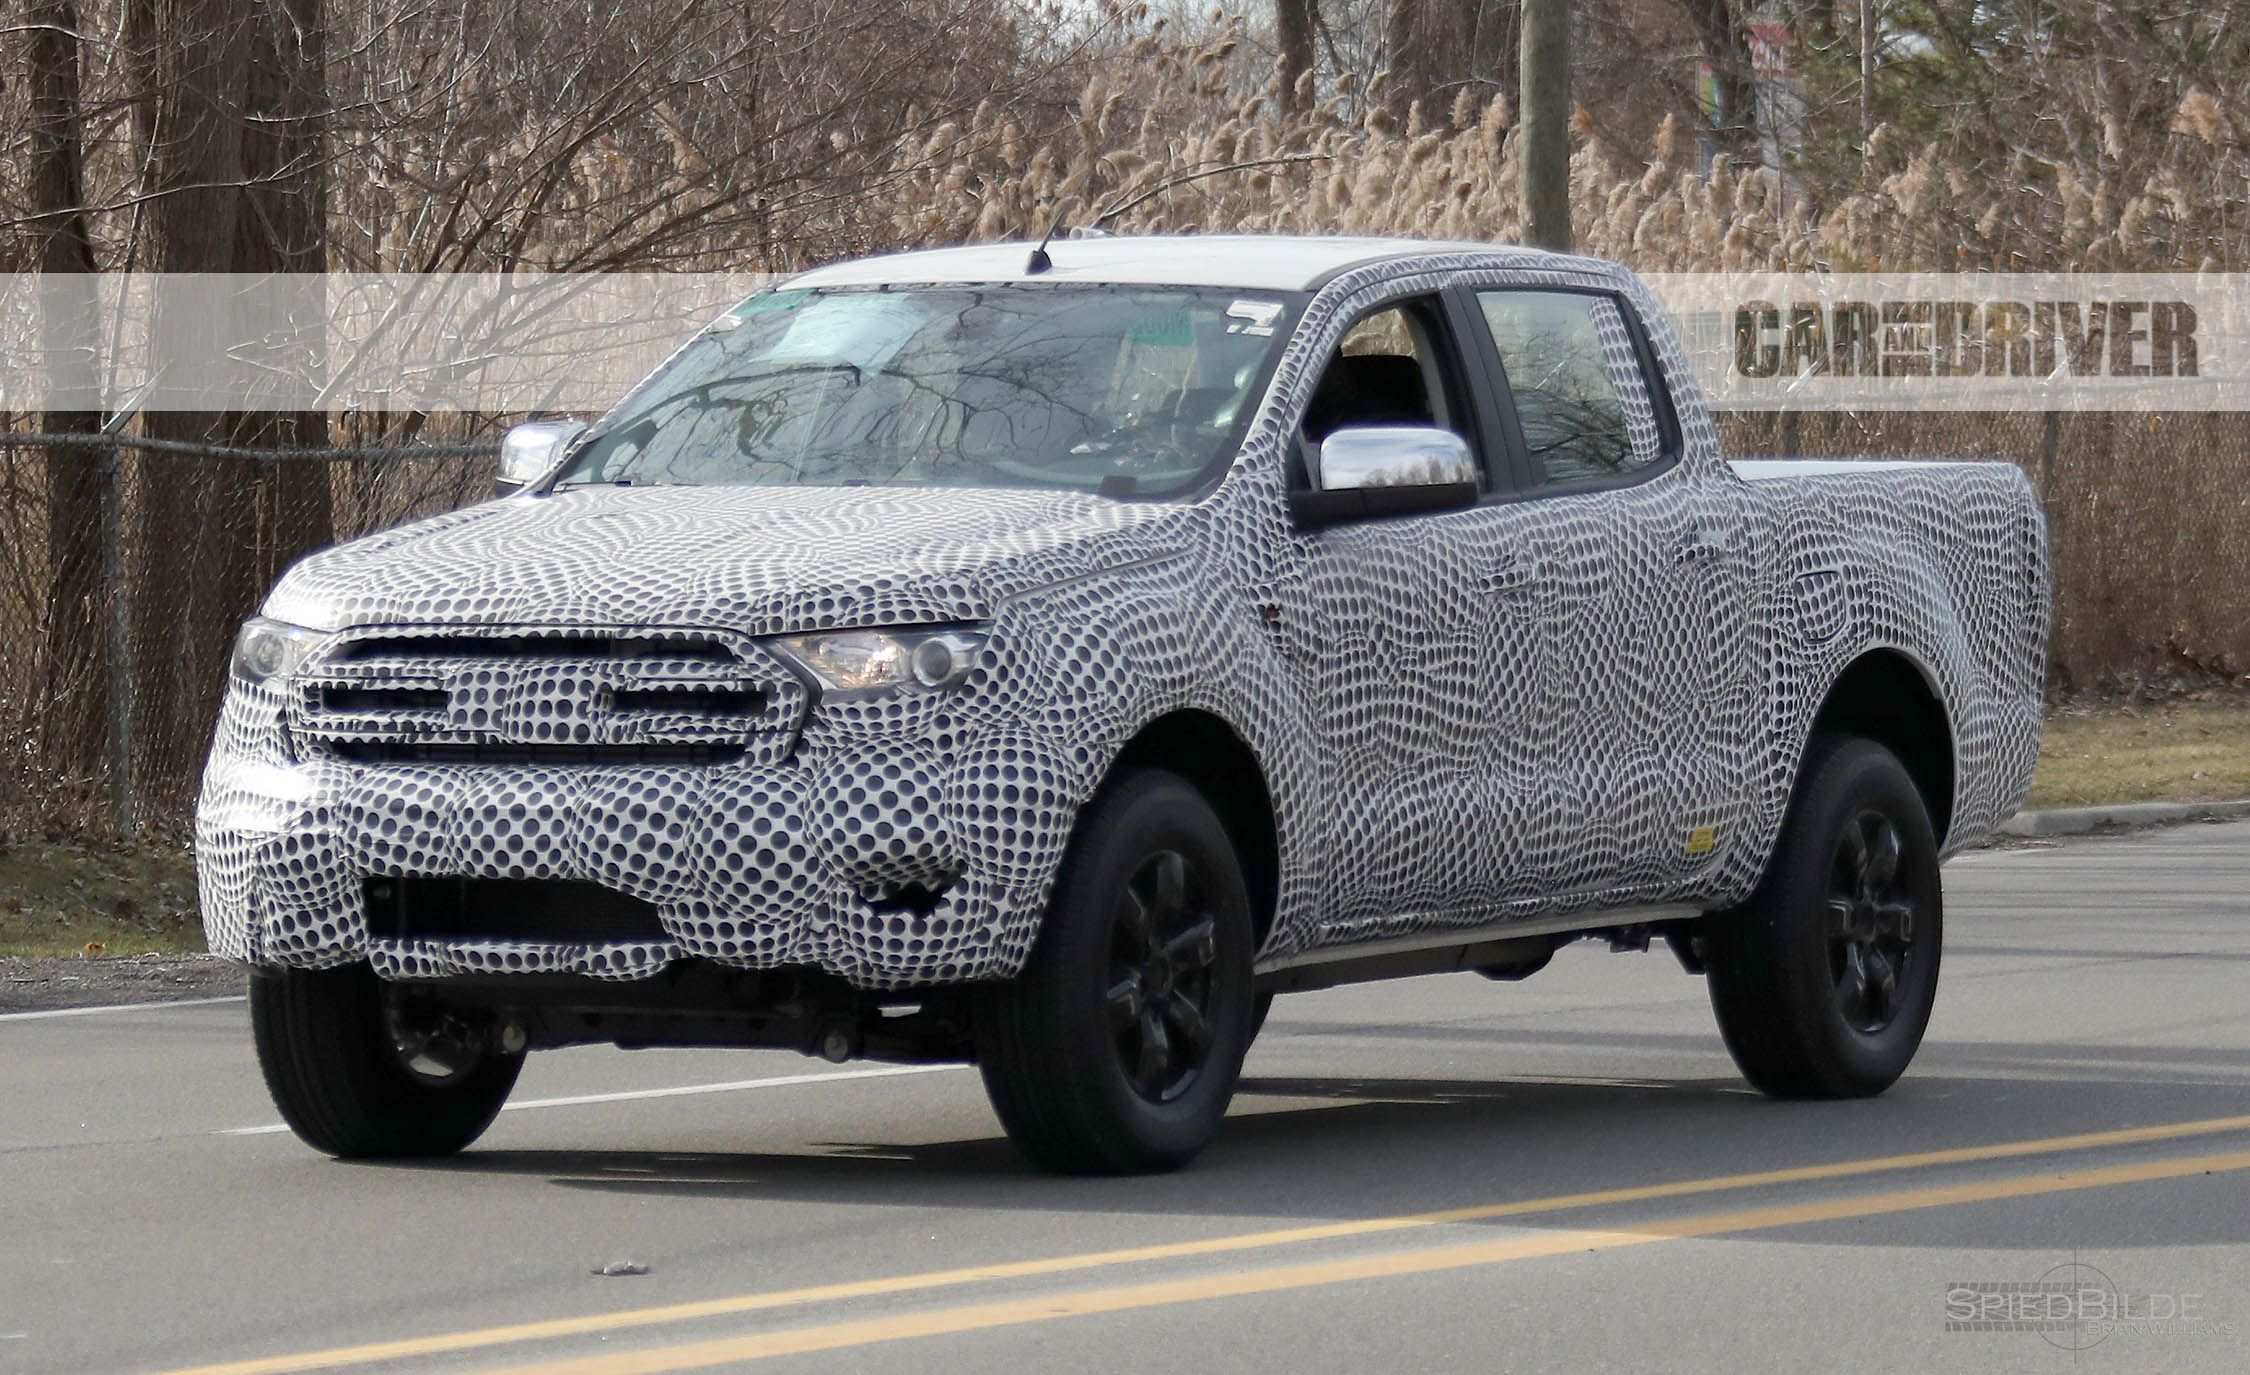 74 Best Review F2019 Ford Ranger Overview with F2019 Ford Ranger